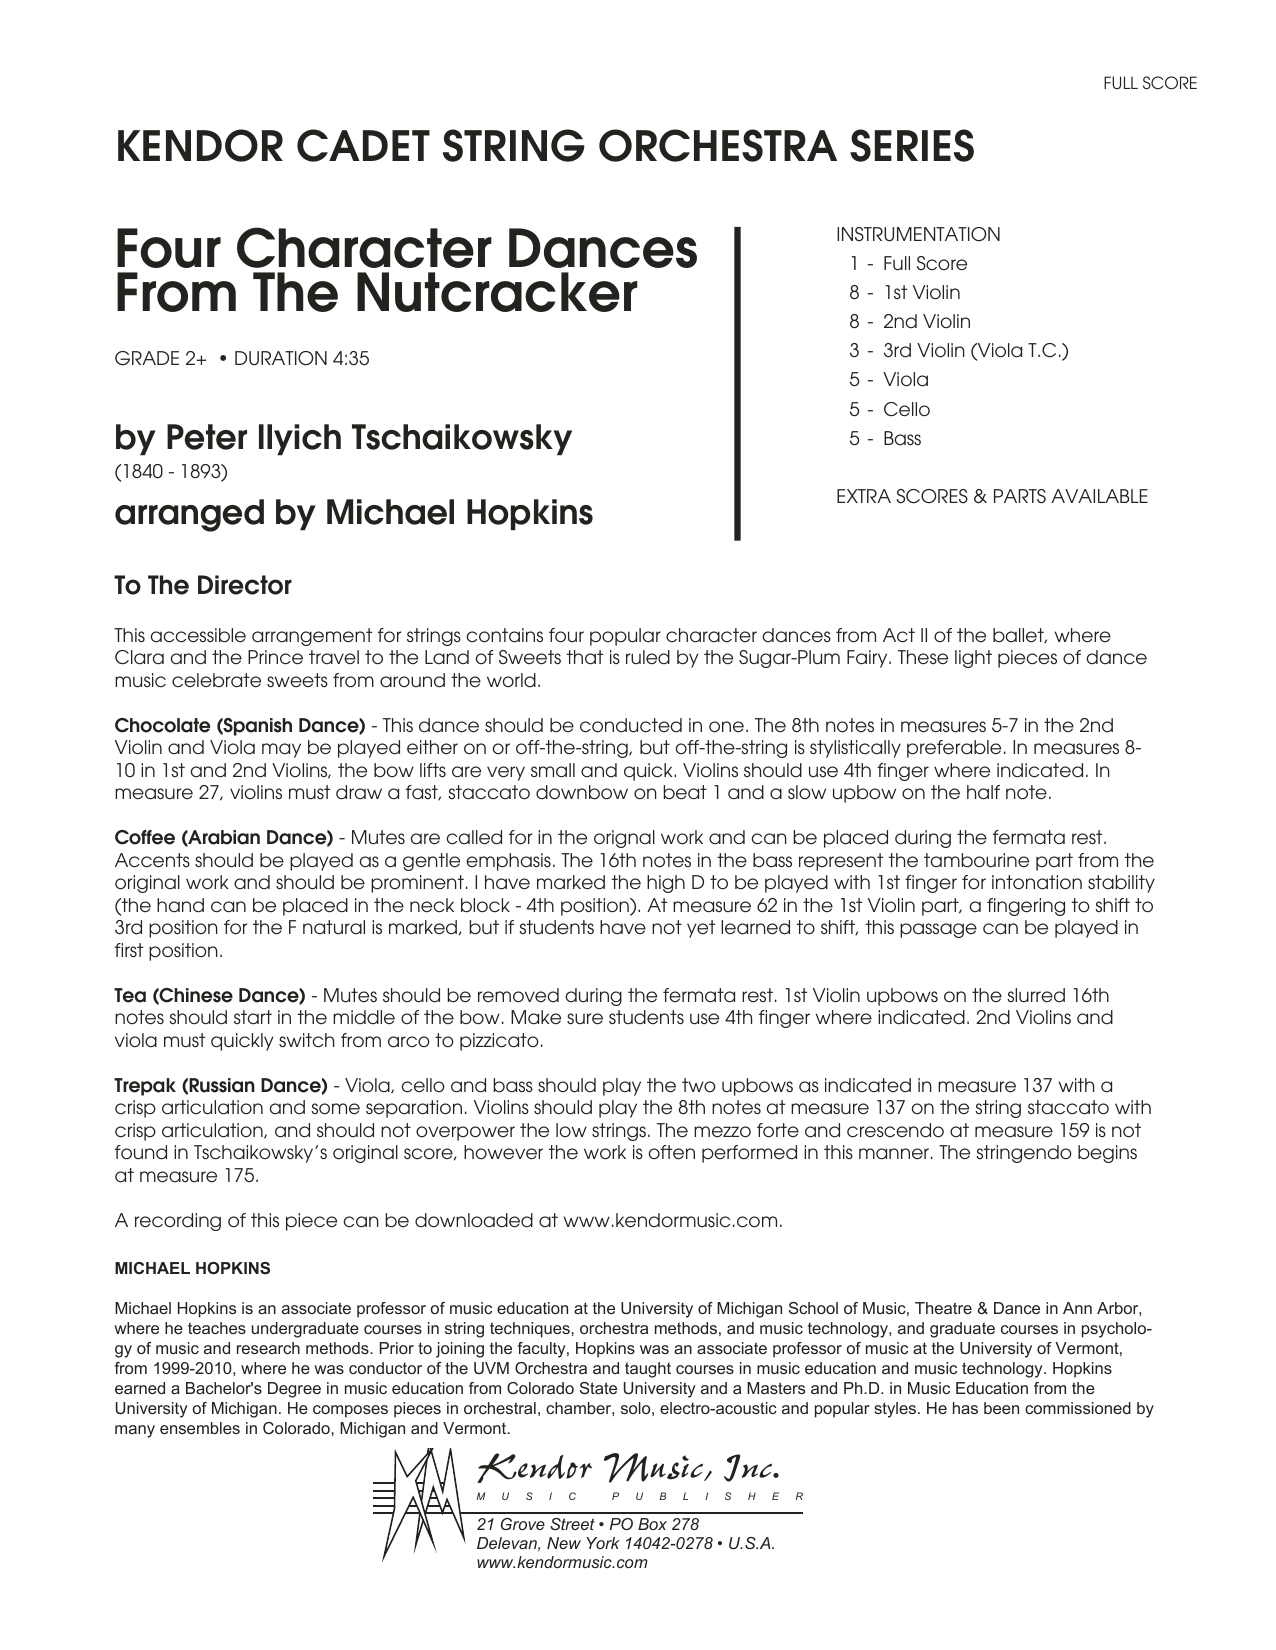 Four Character Dances From The Nutcracker - Full Score